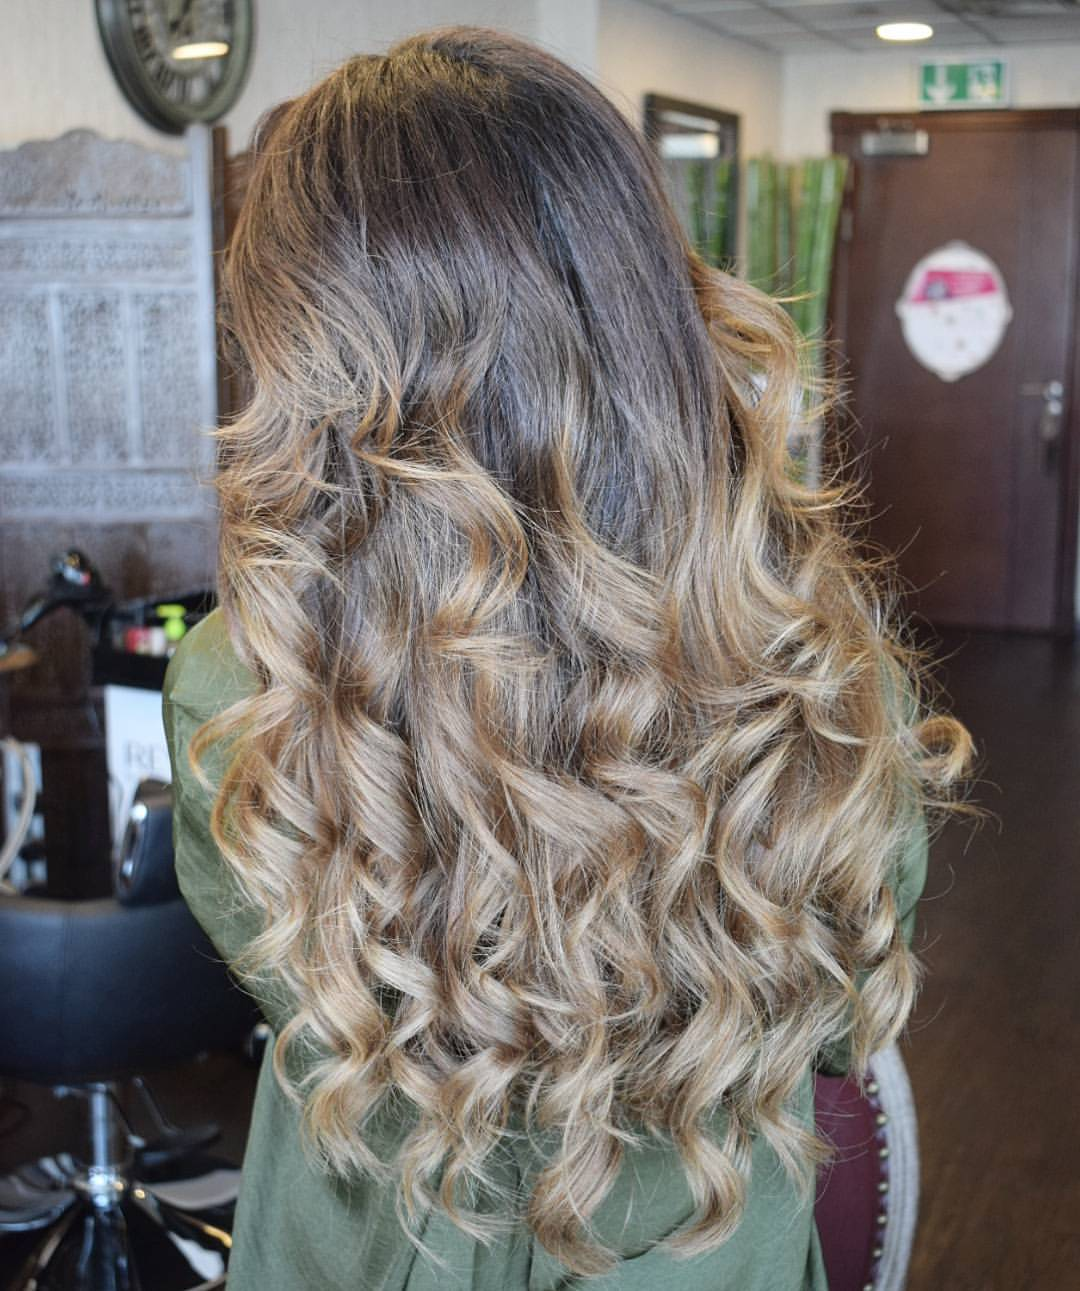 Top Hair Salon Dubai